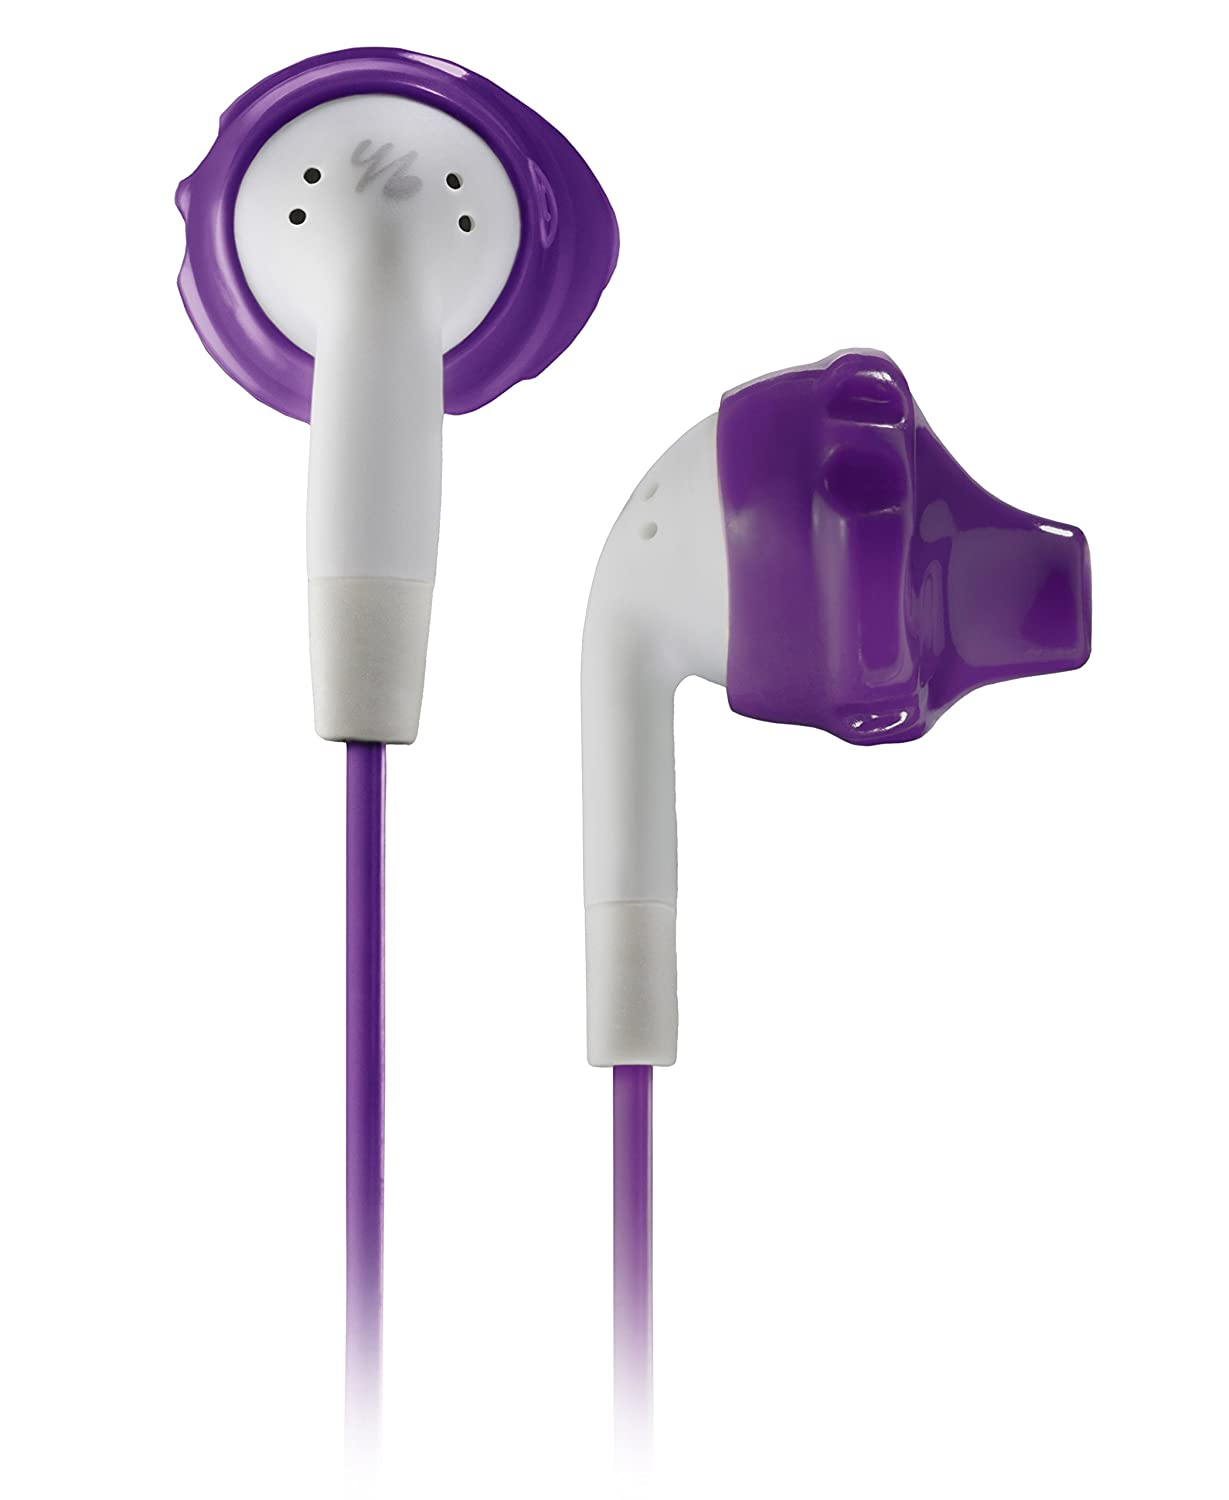 Sport in ear headphones for women with relatively small ears.